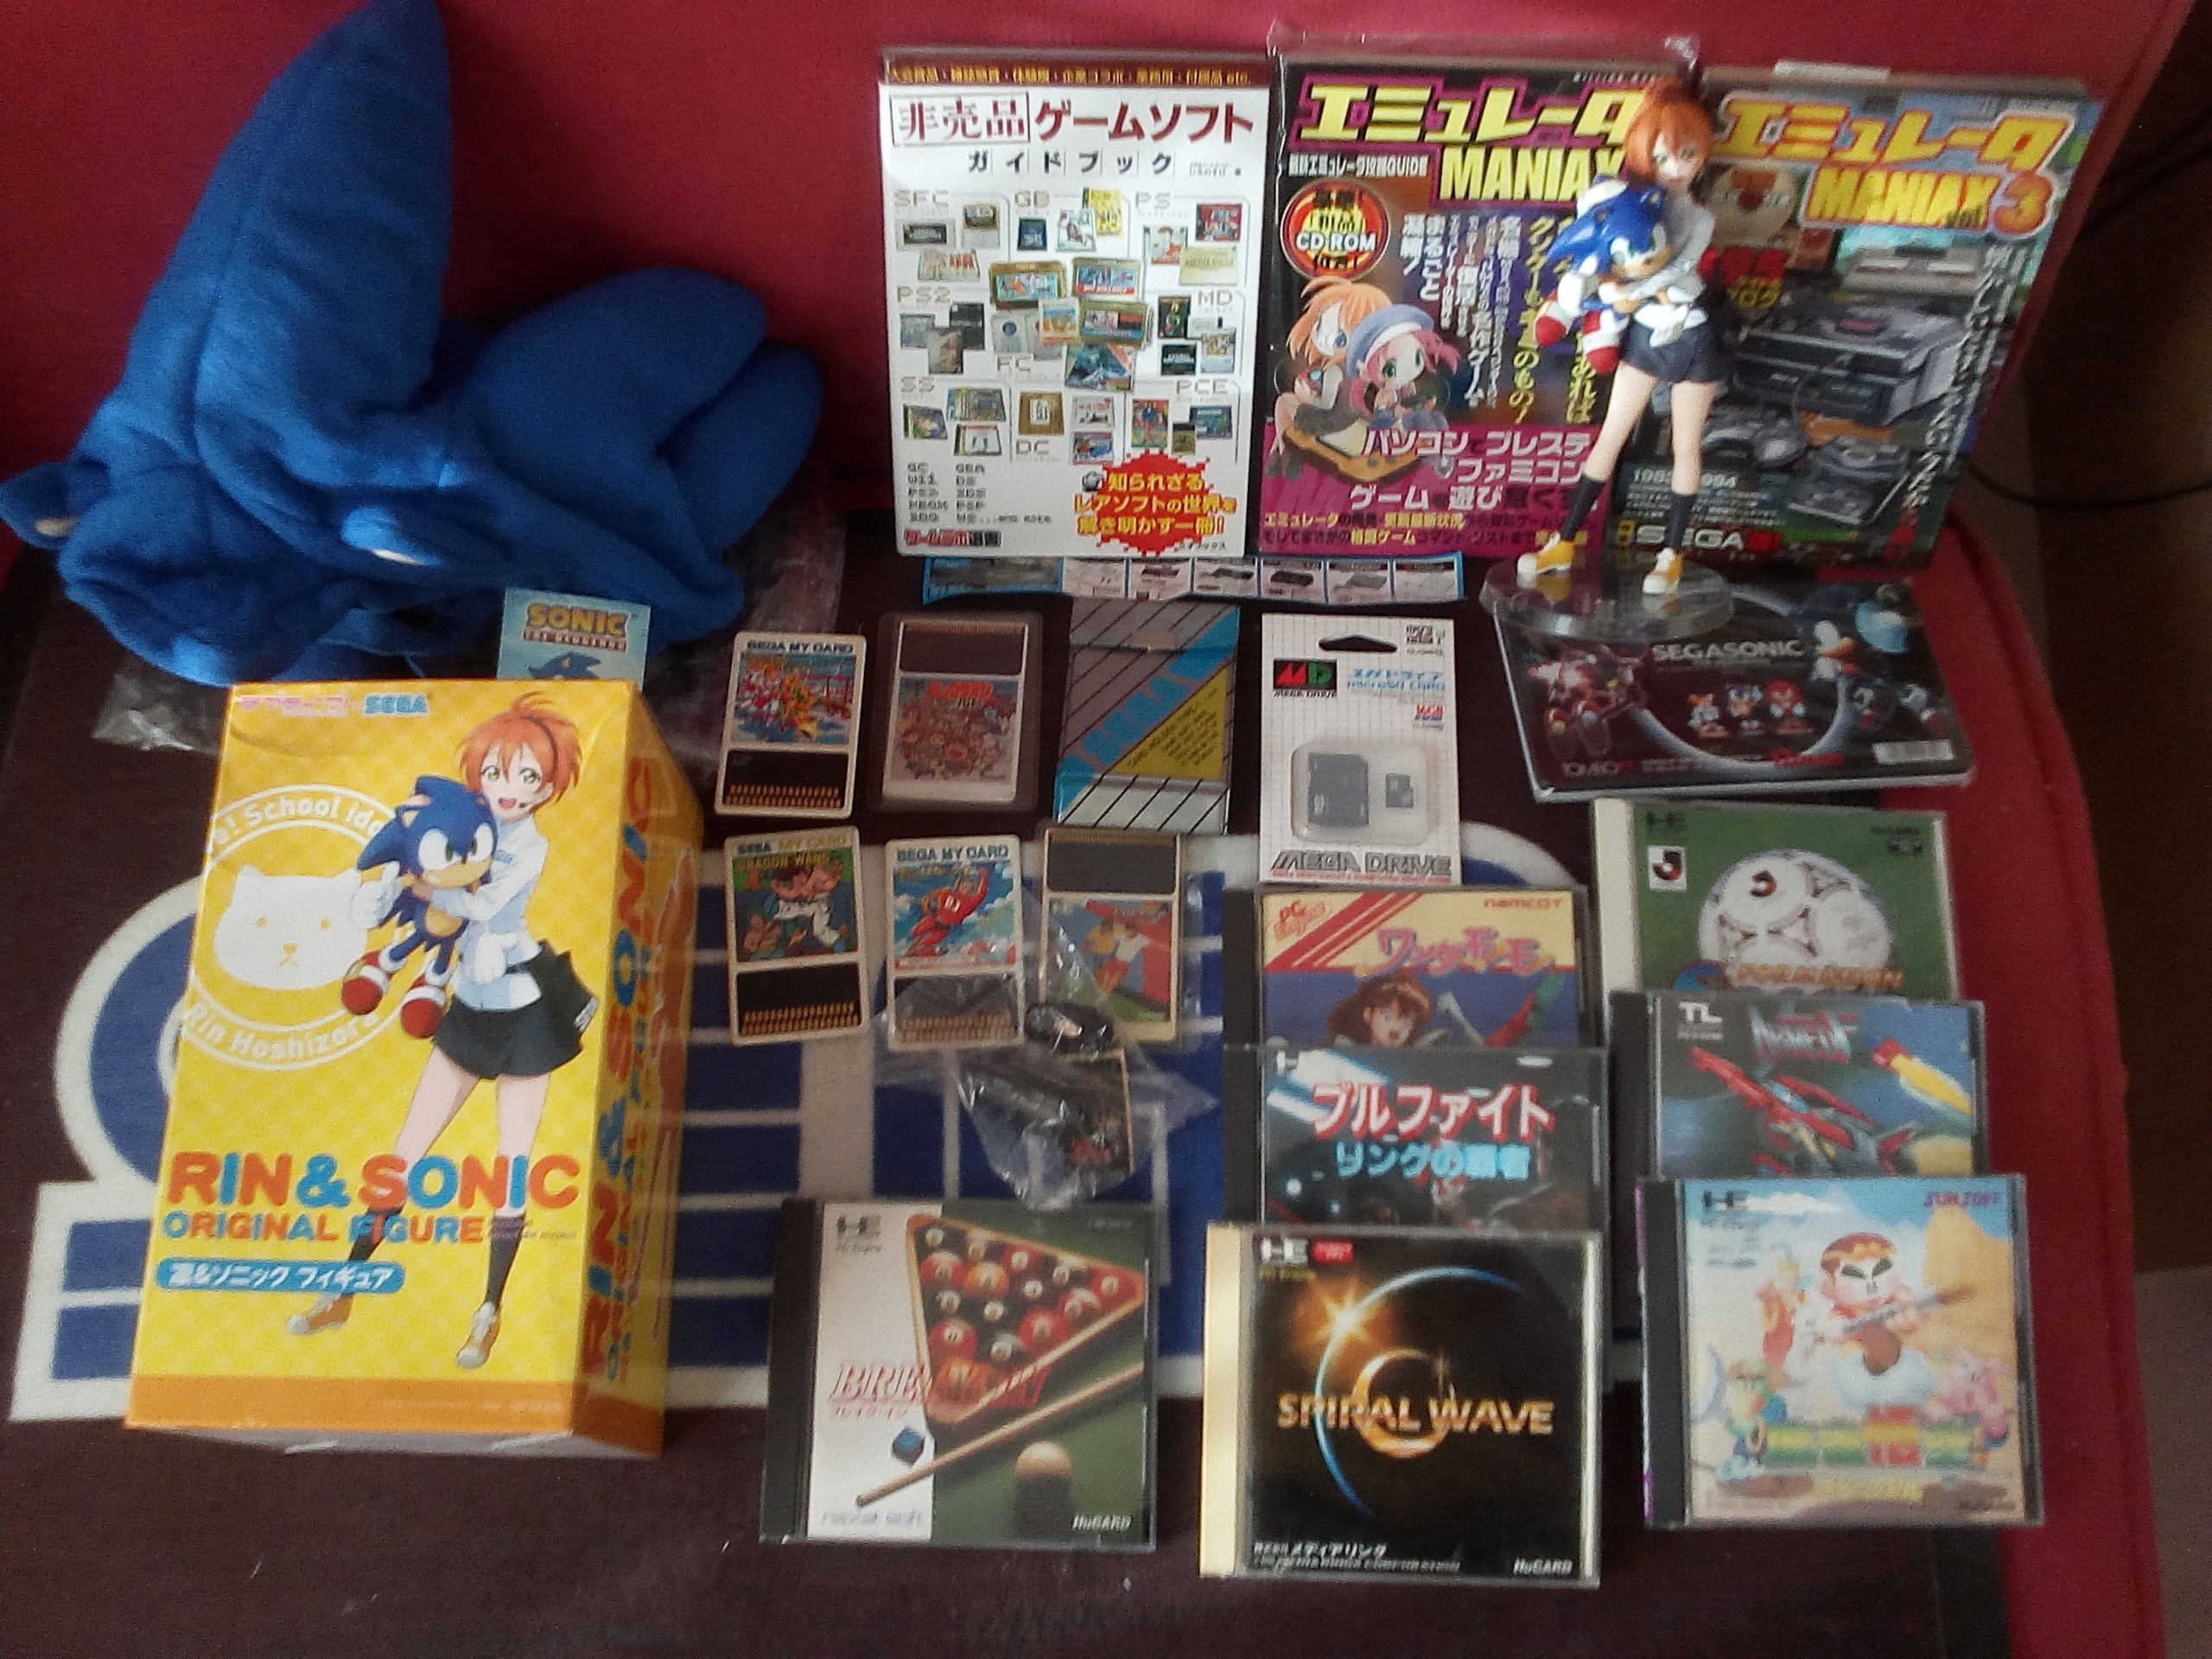 [VDS] Trucs jap, PSP, GG, PS3, SFC, Mark III, NEC, Goodies Sega jap etc Goodie10